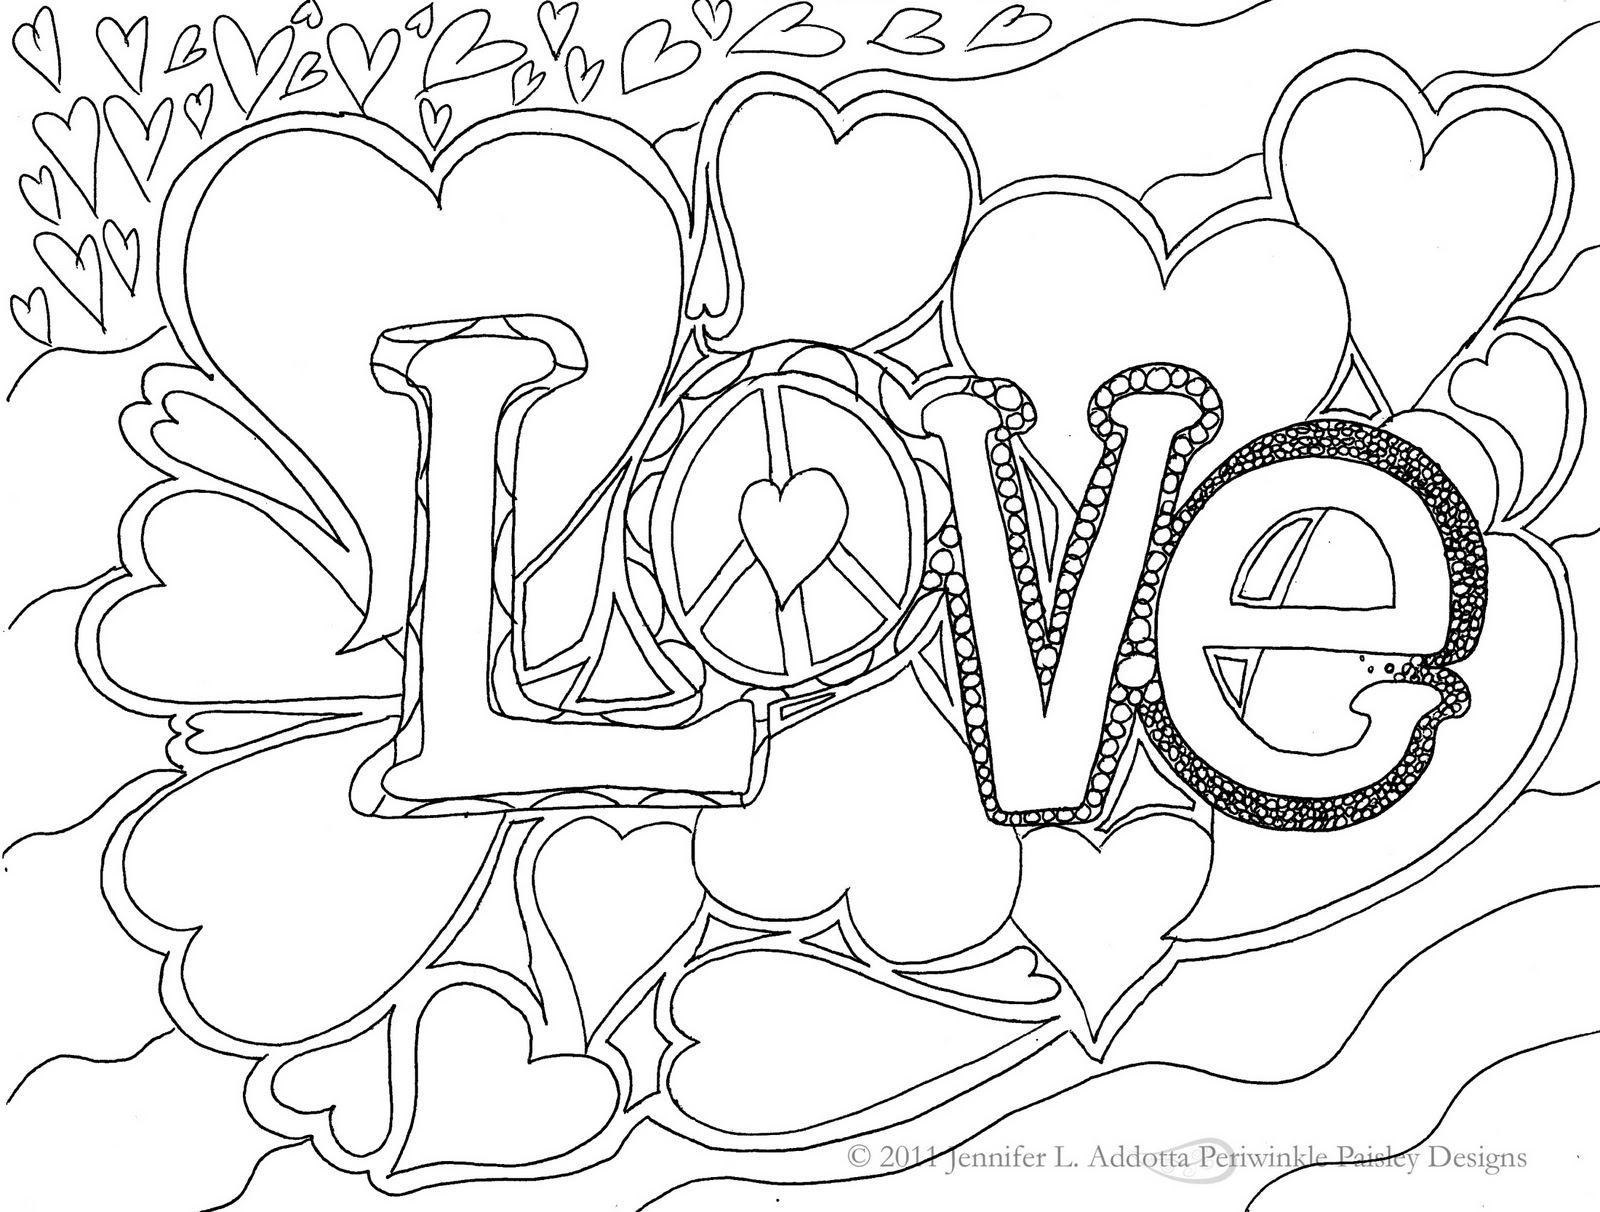 coloring pages not to print-#23